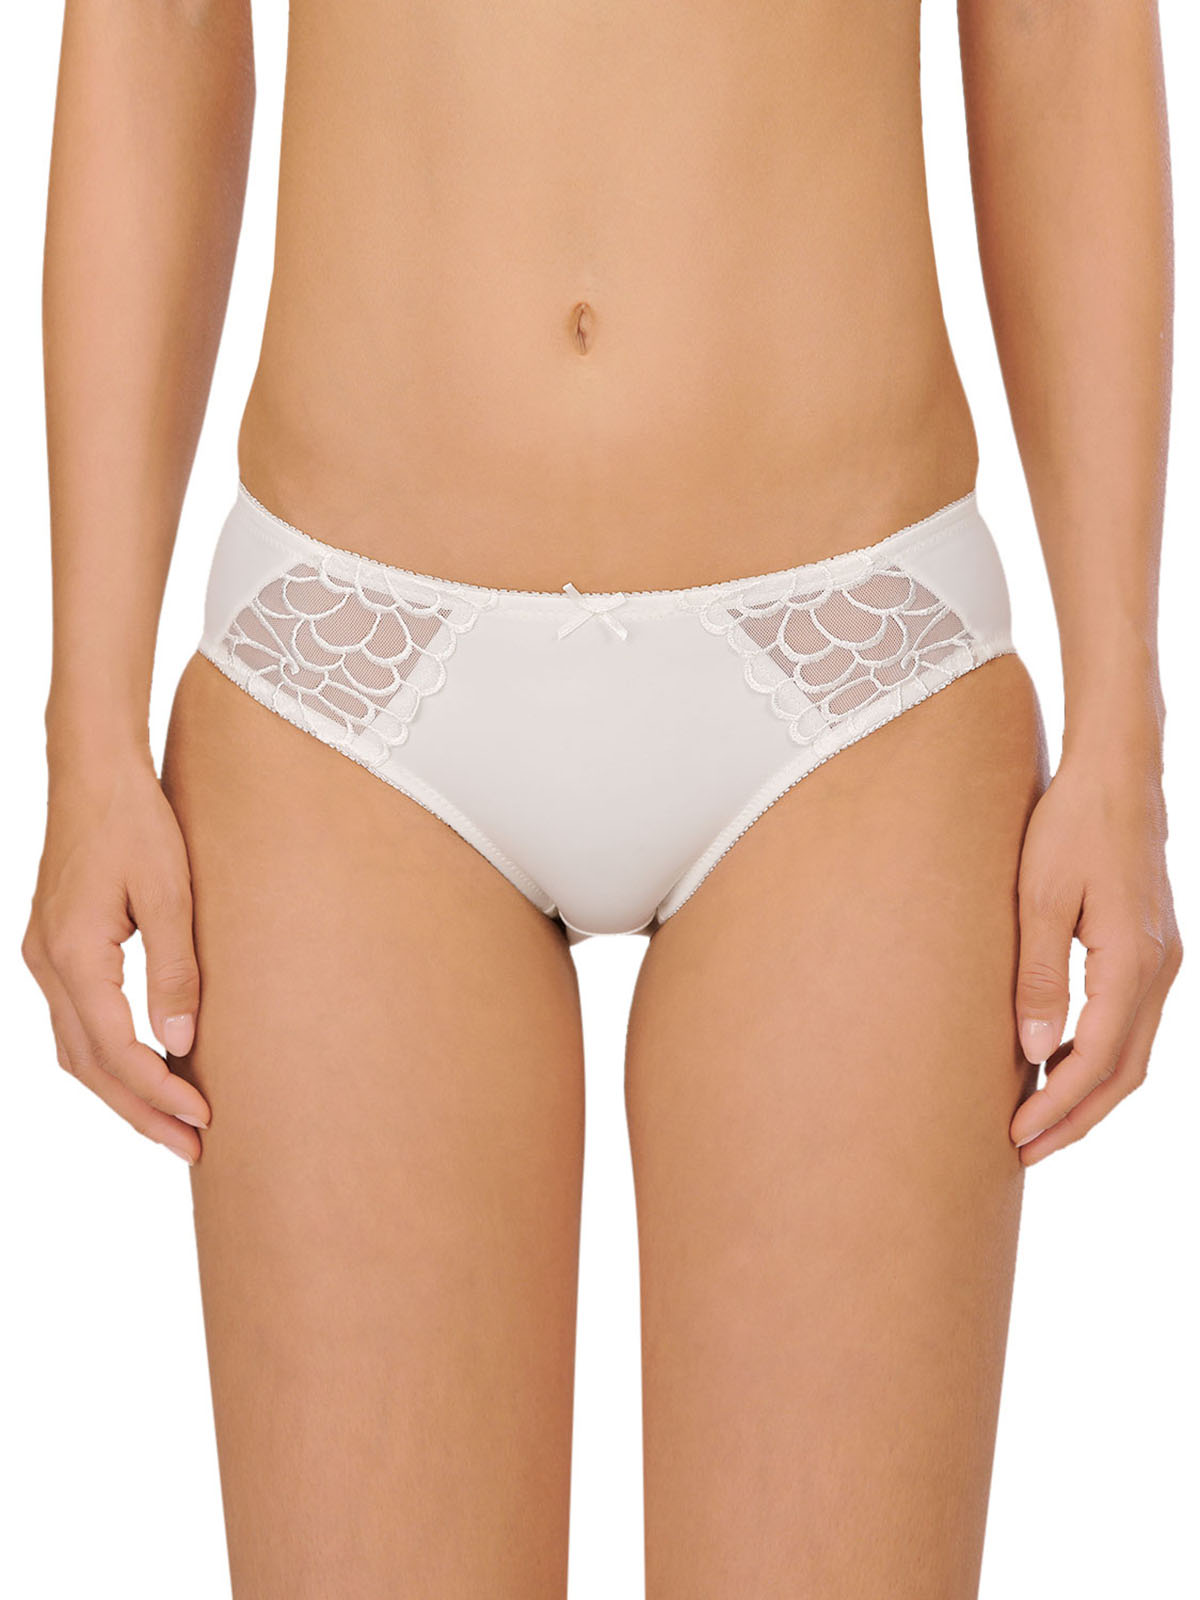 NATURANA Women's Brief 4483 S-2XL